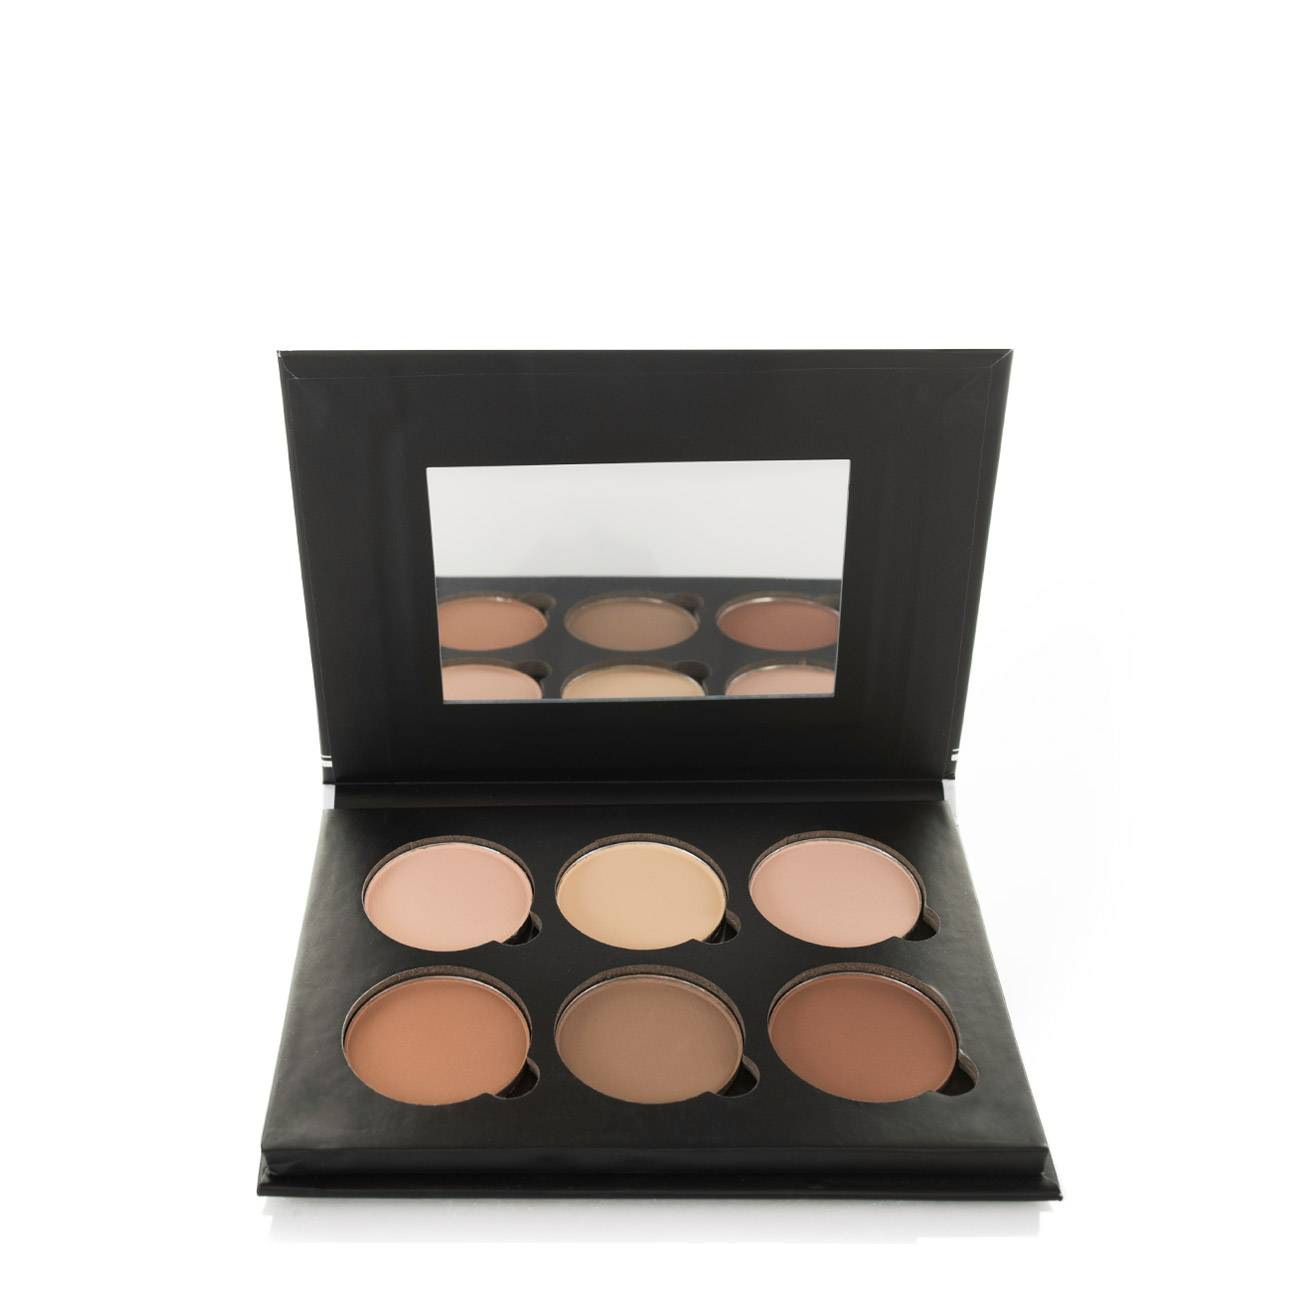 CONTOUR AND HIGHLIGHT PRO PALETTE 010 17 Grame